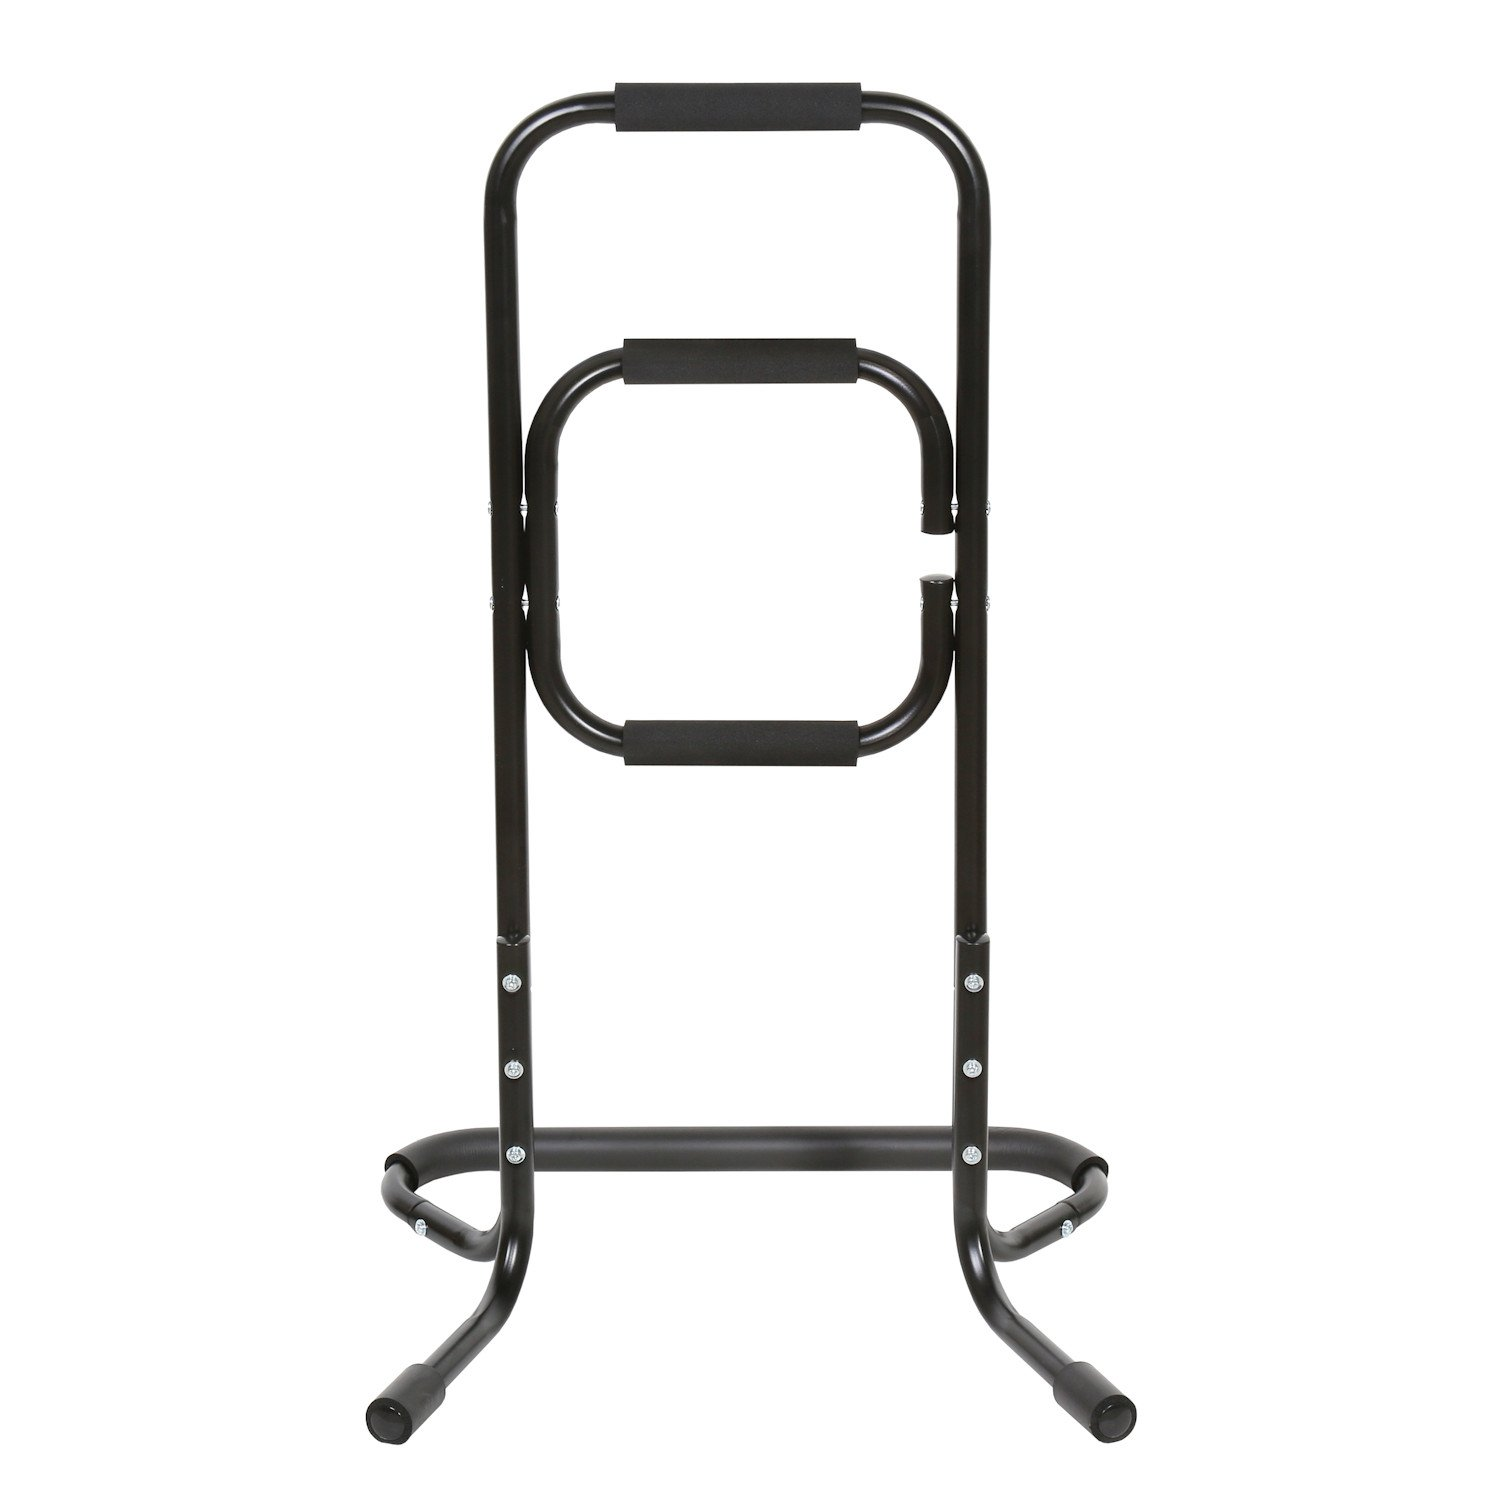 Portable Chair Assist - Helps Rise from Seated Position - Mobility Standing Aid by Bandwagon